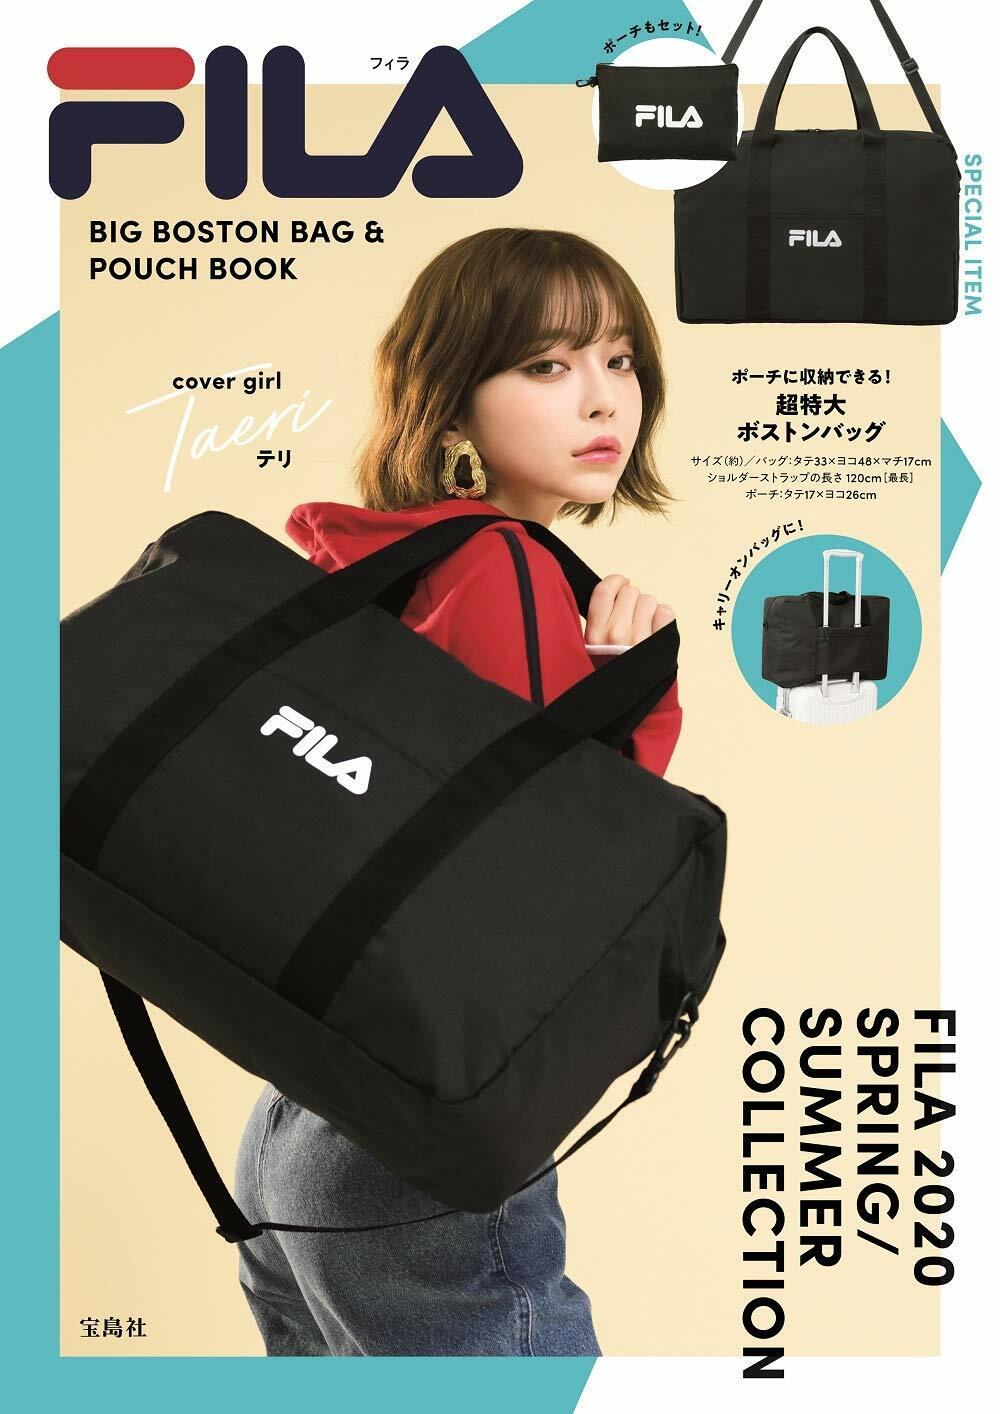 FILA BIG BOSTON BAG & POUCH BOOK (ブランドブック)